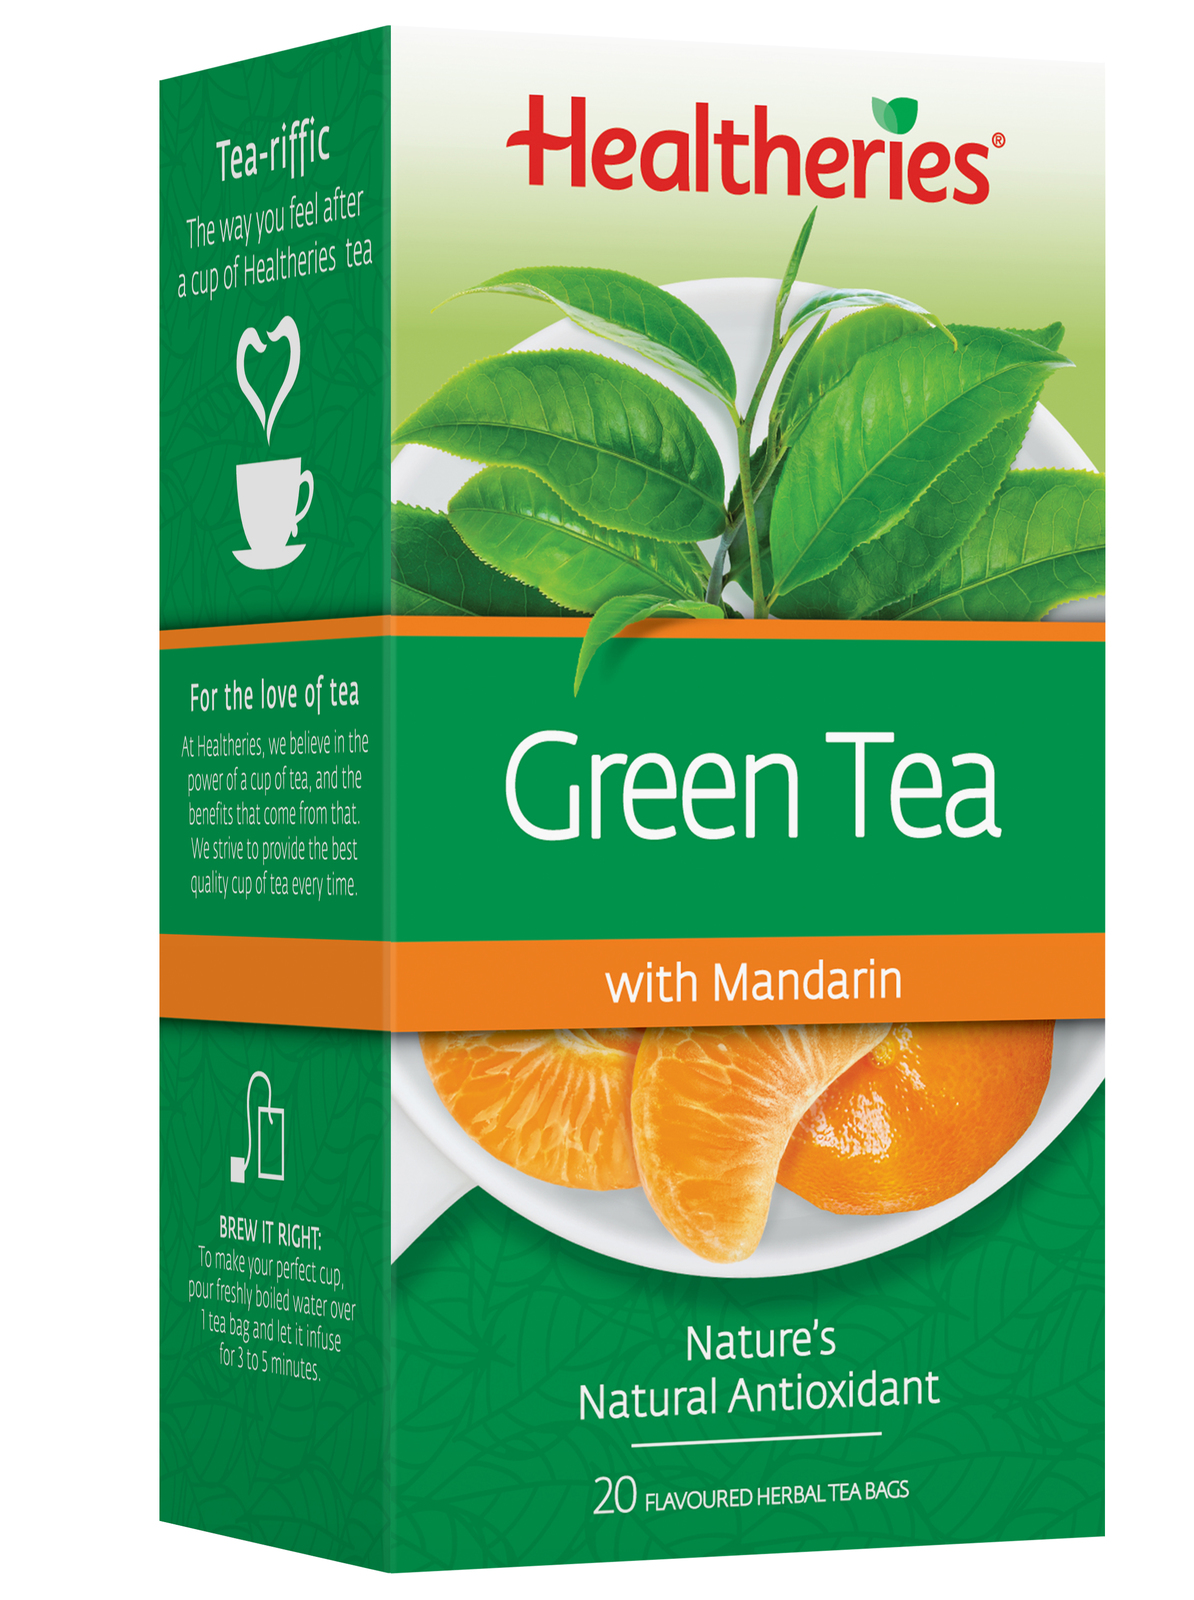 Healtheries Green Tea with Mandarin (Pack of 20) image